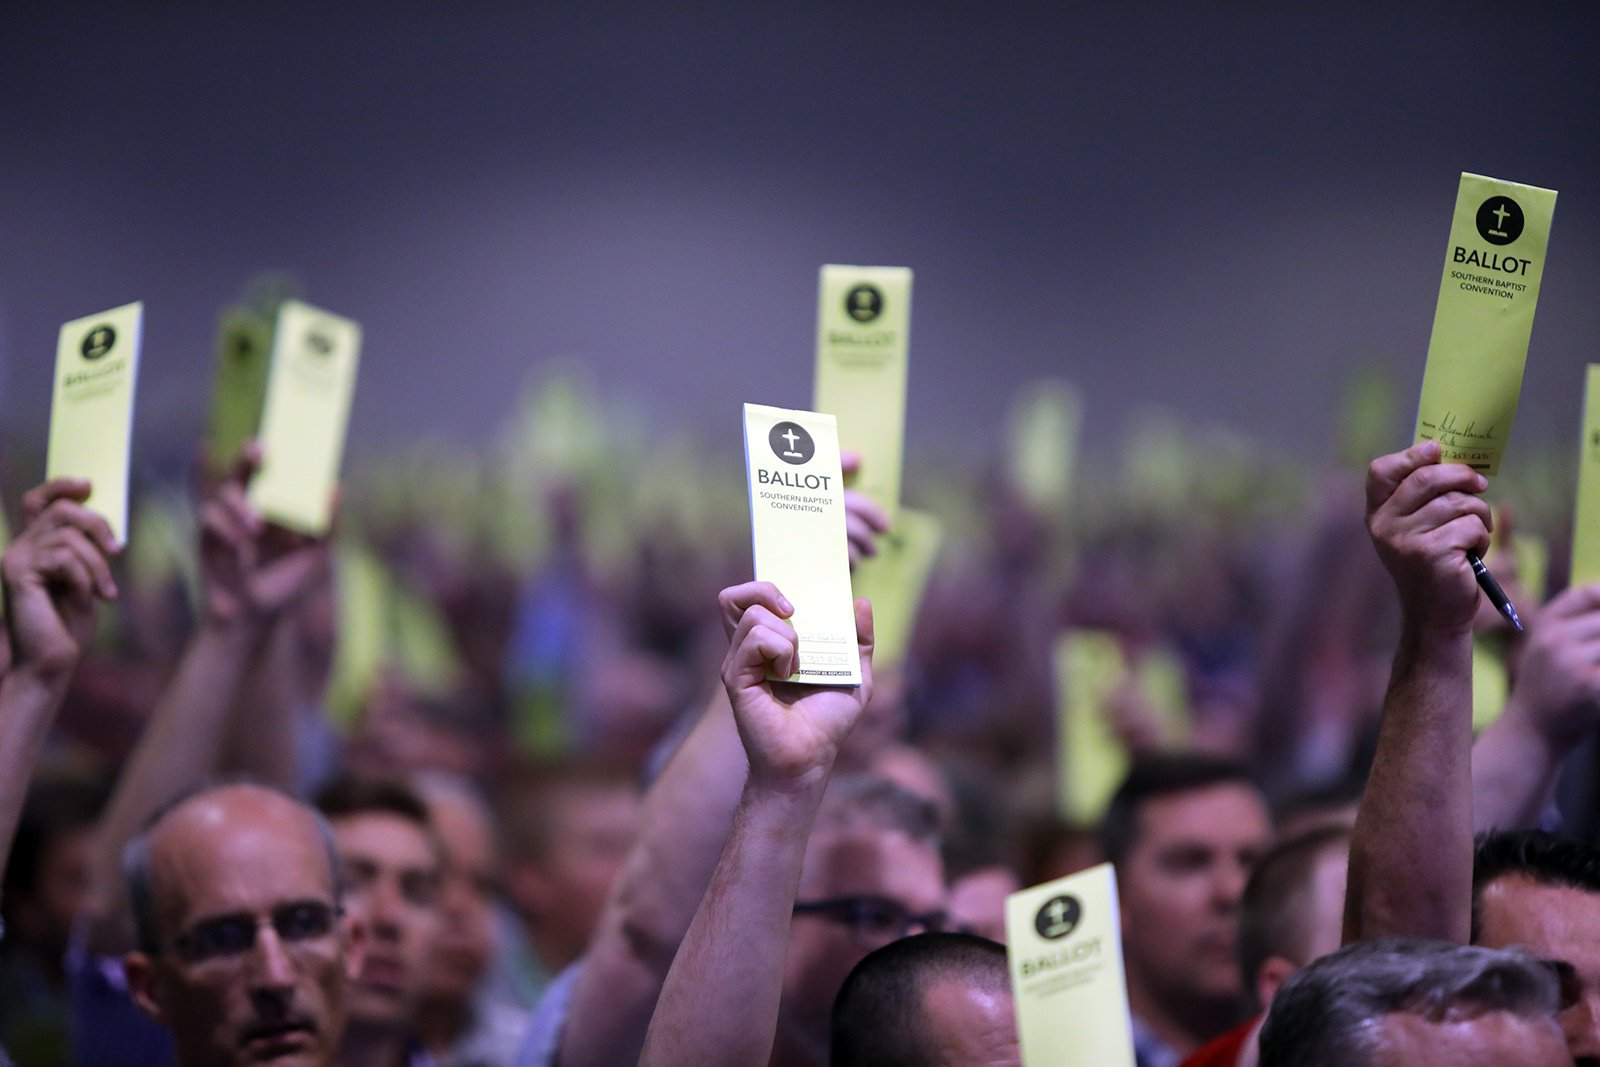 Messengers vote during the annual meeting of the Southern Baptist Convention, Tuesday, June 15, 2021, at the Music City Center in Nashville. RNS photo by Kit Doyle